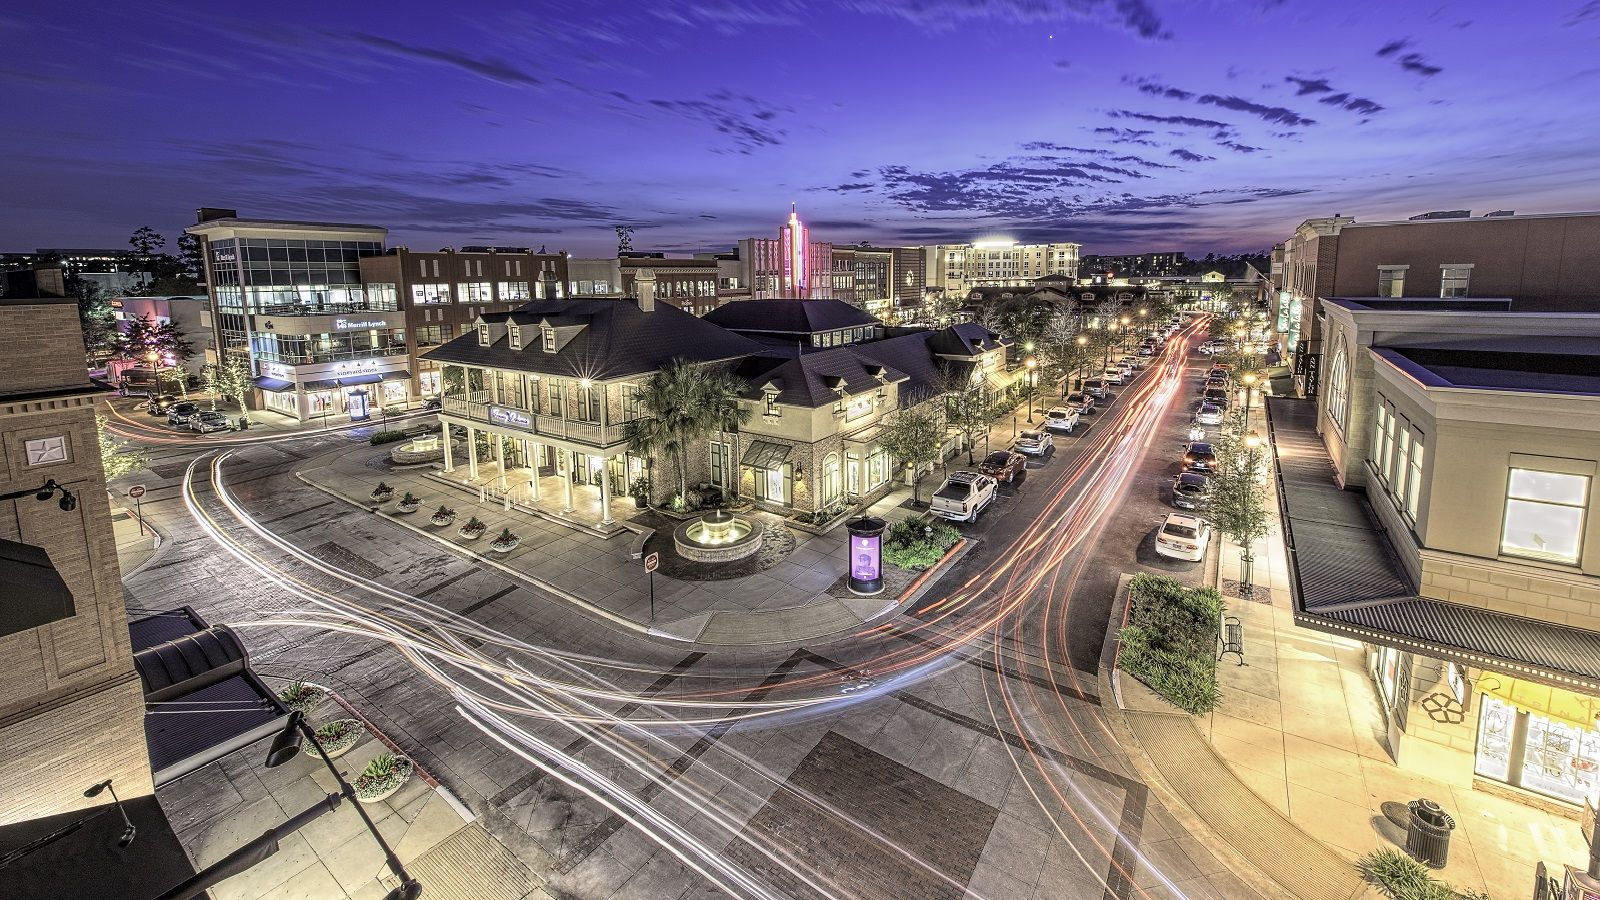 Hotels in The Woodlands TX Market Street